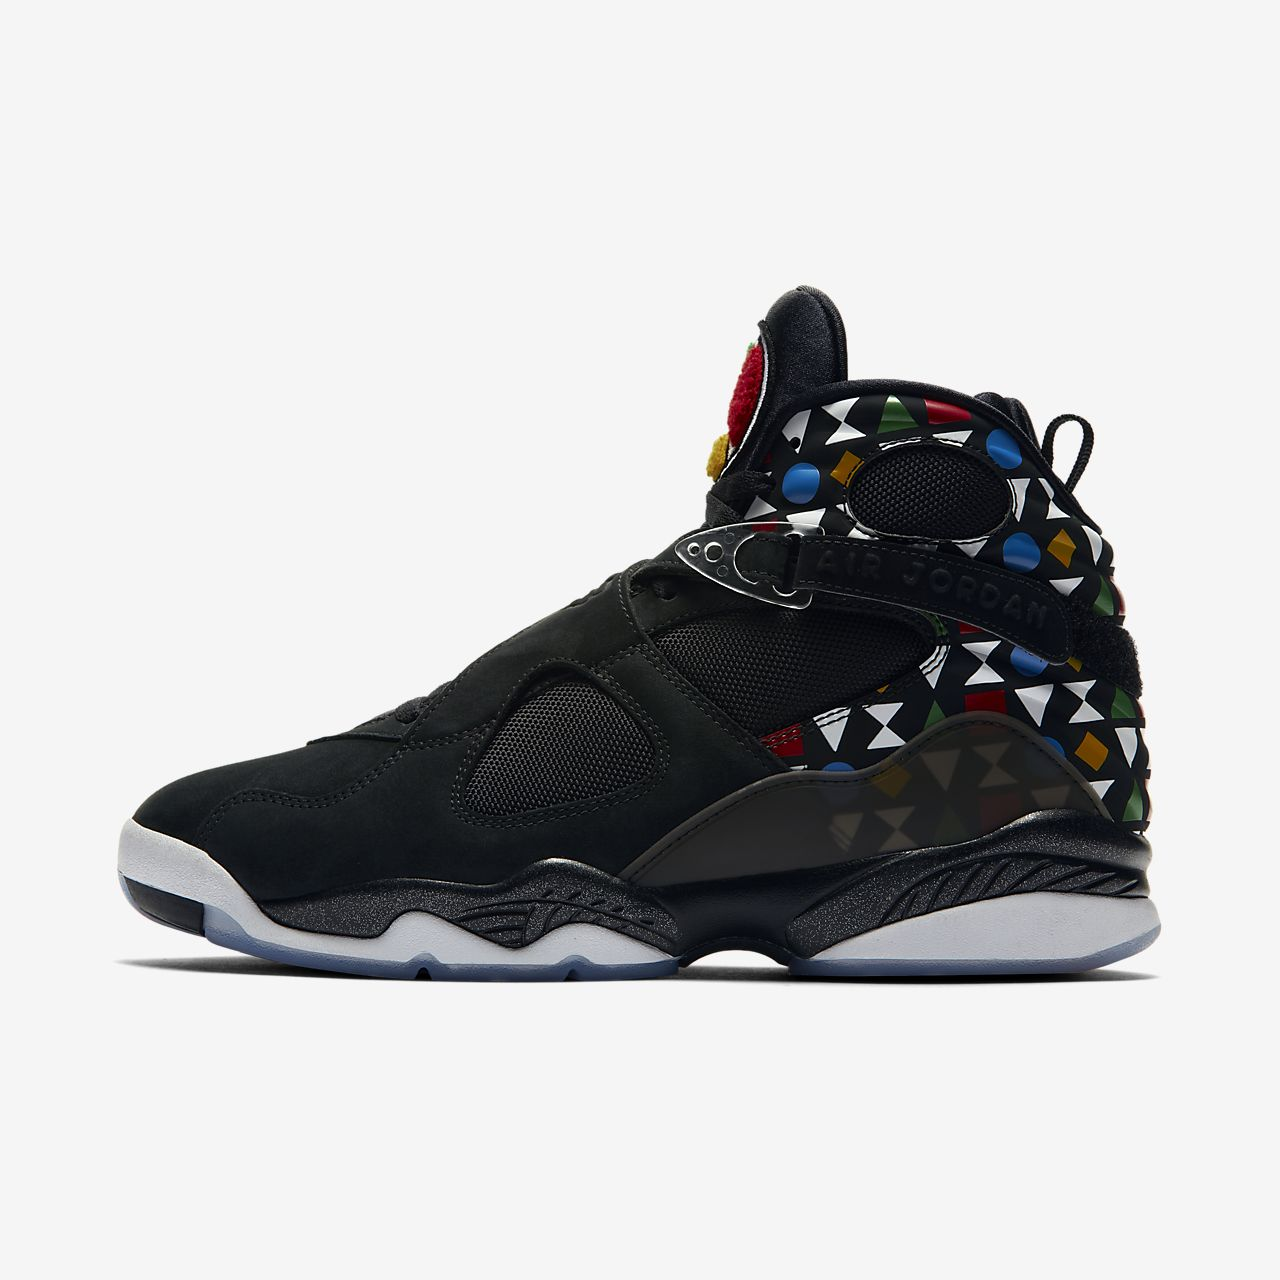 2018 sneakers great deals 2017 great fit Buty męskie Air Jordan 8 Retro Q54